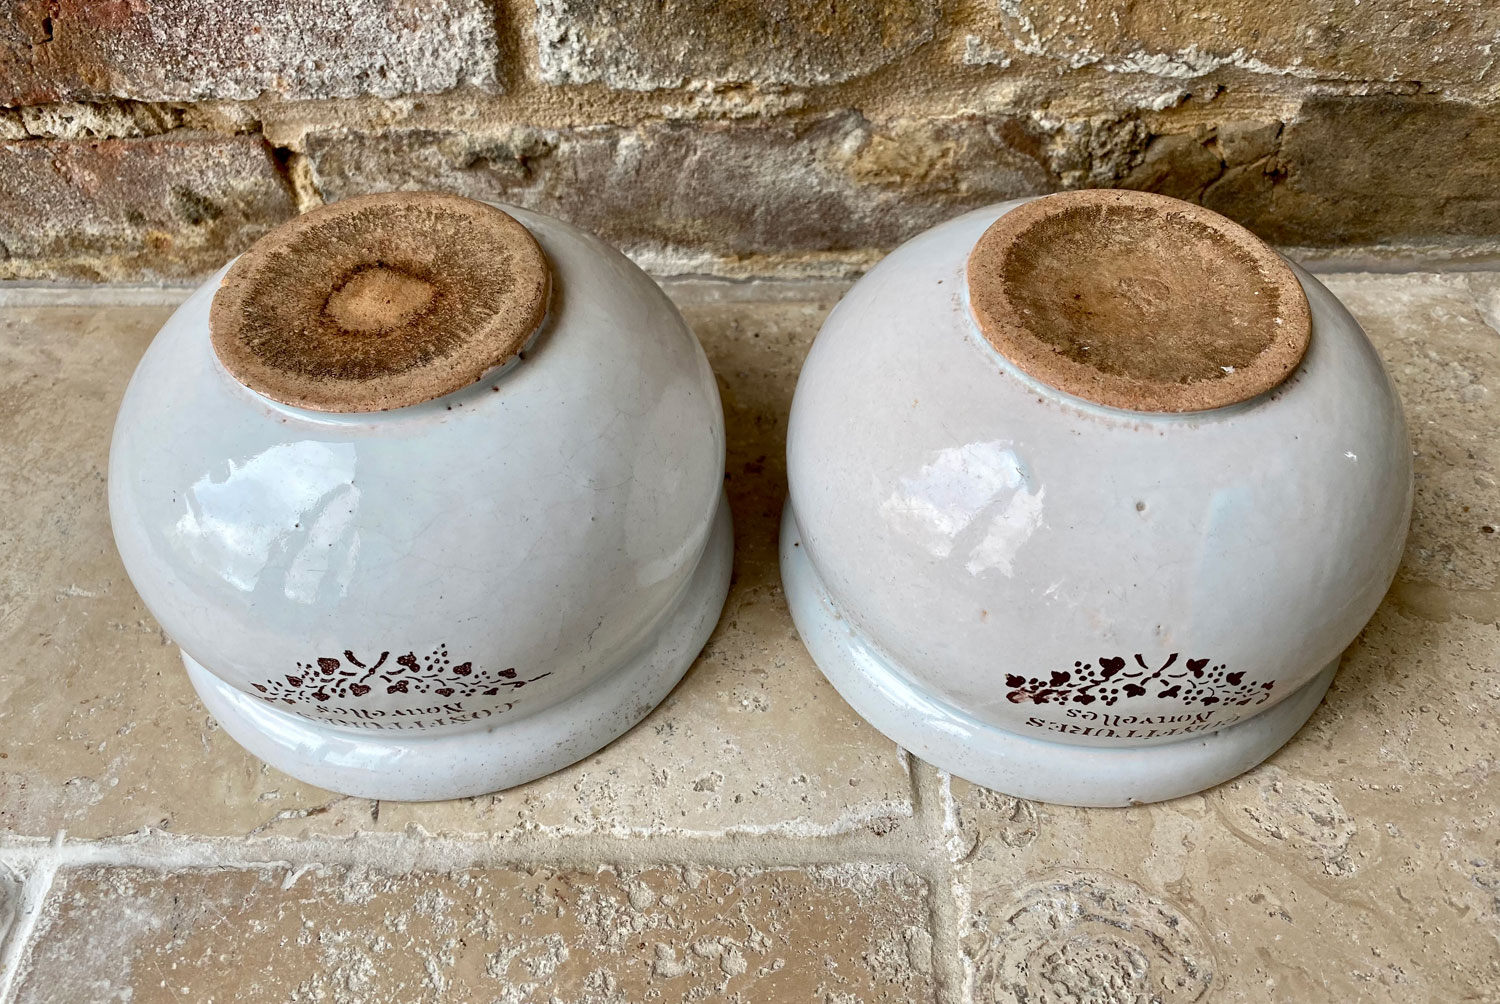 antique early 20th century french shallow rounded confitures pot nouvelles stoneware ironstone advertising jam pot jars